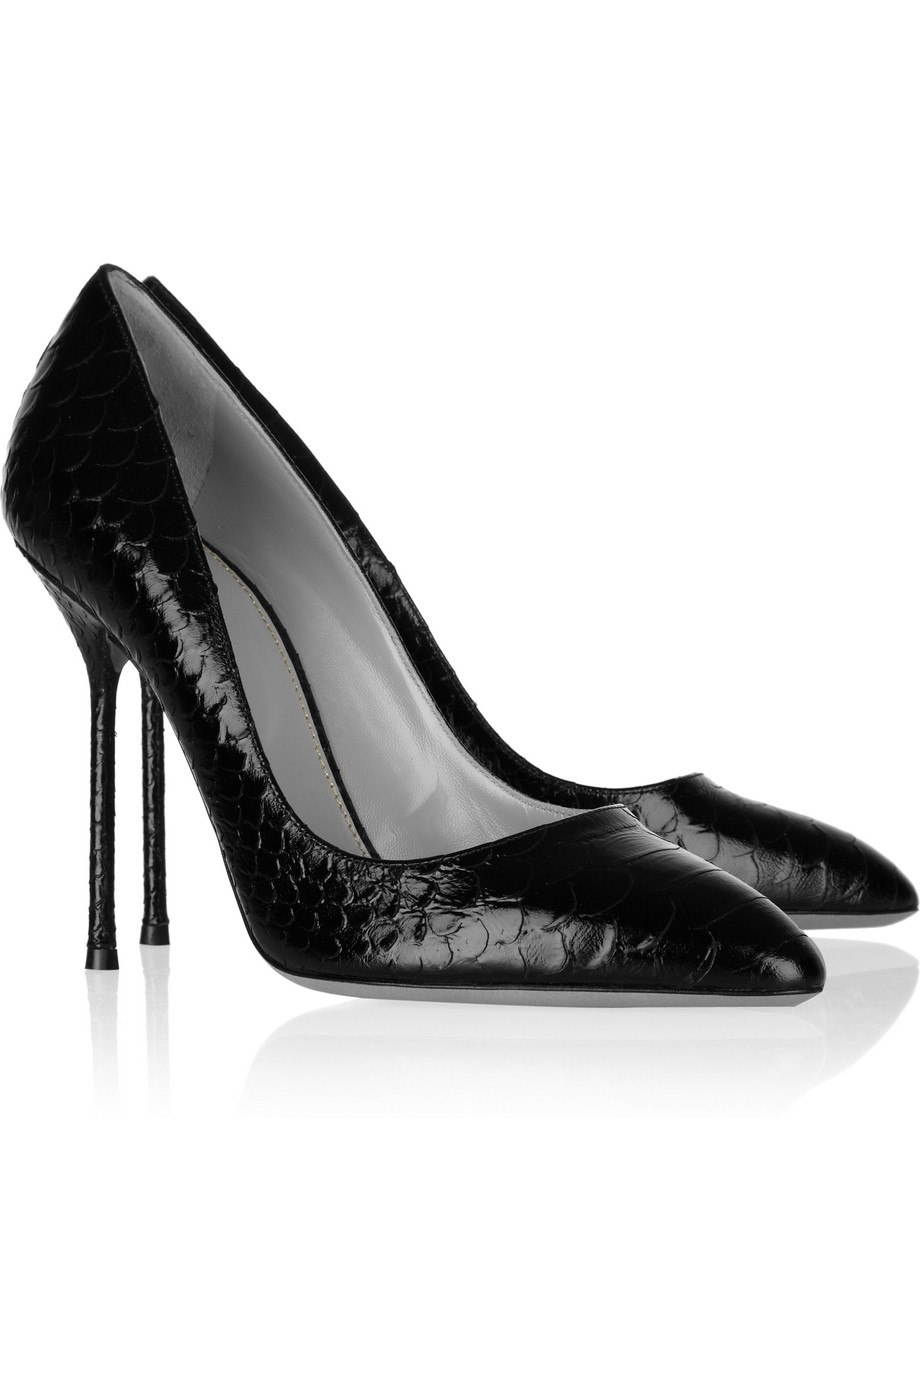 Sergio Rossi Embossed Leather Peep-Toe Pumps clearance ebay explore online YONlxI